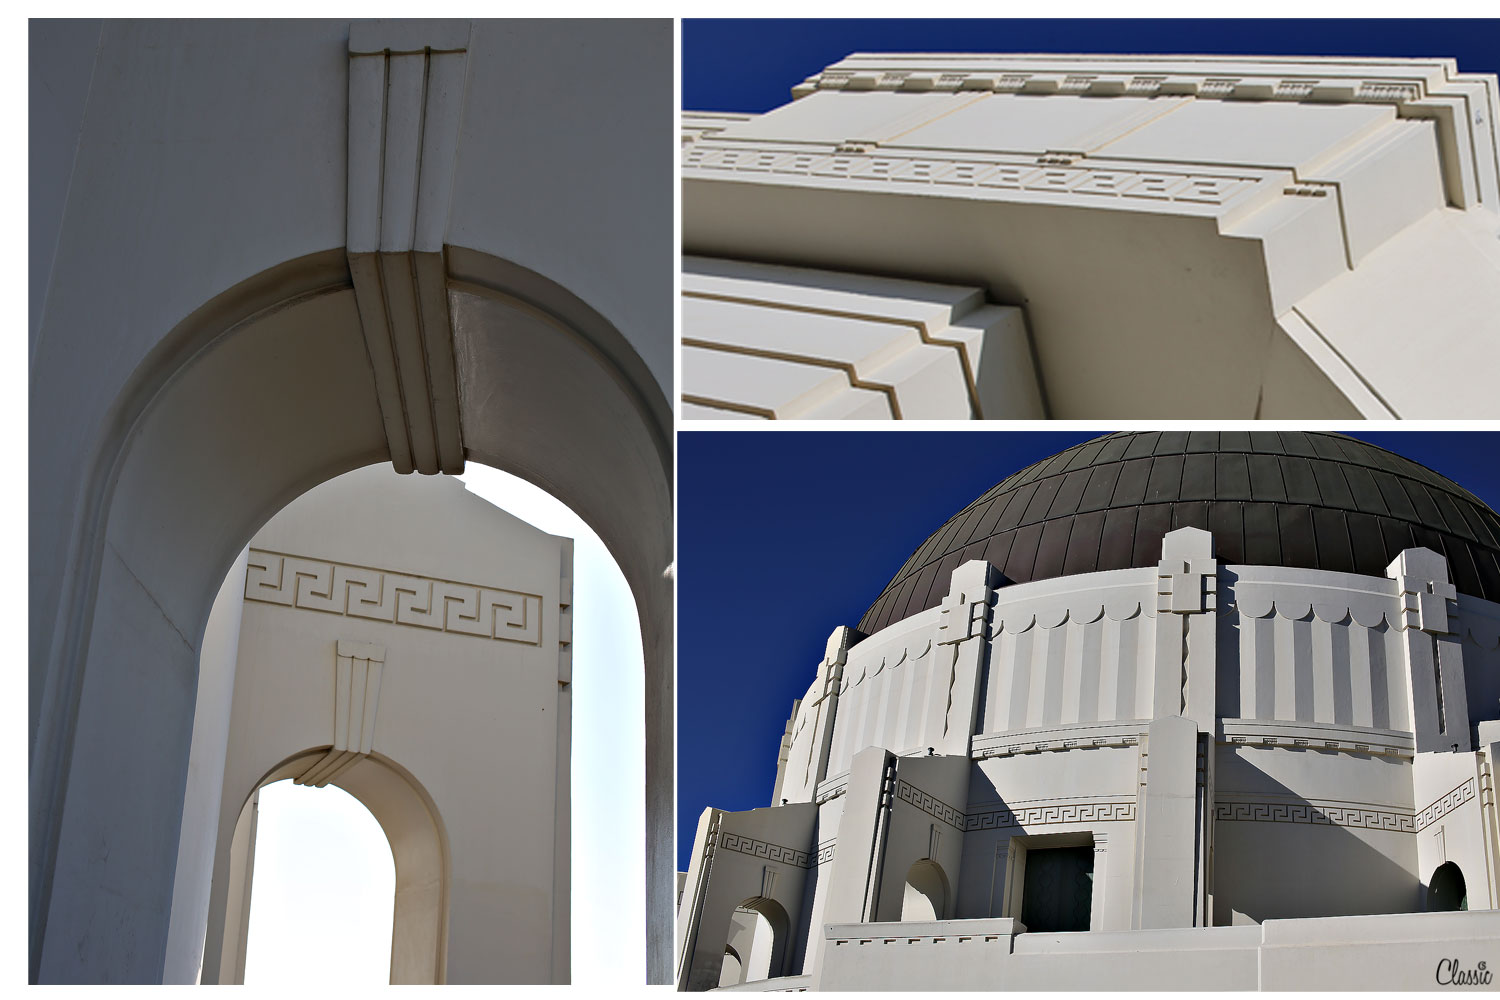 The lines of Griffith Observatory CHIARIstyle